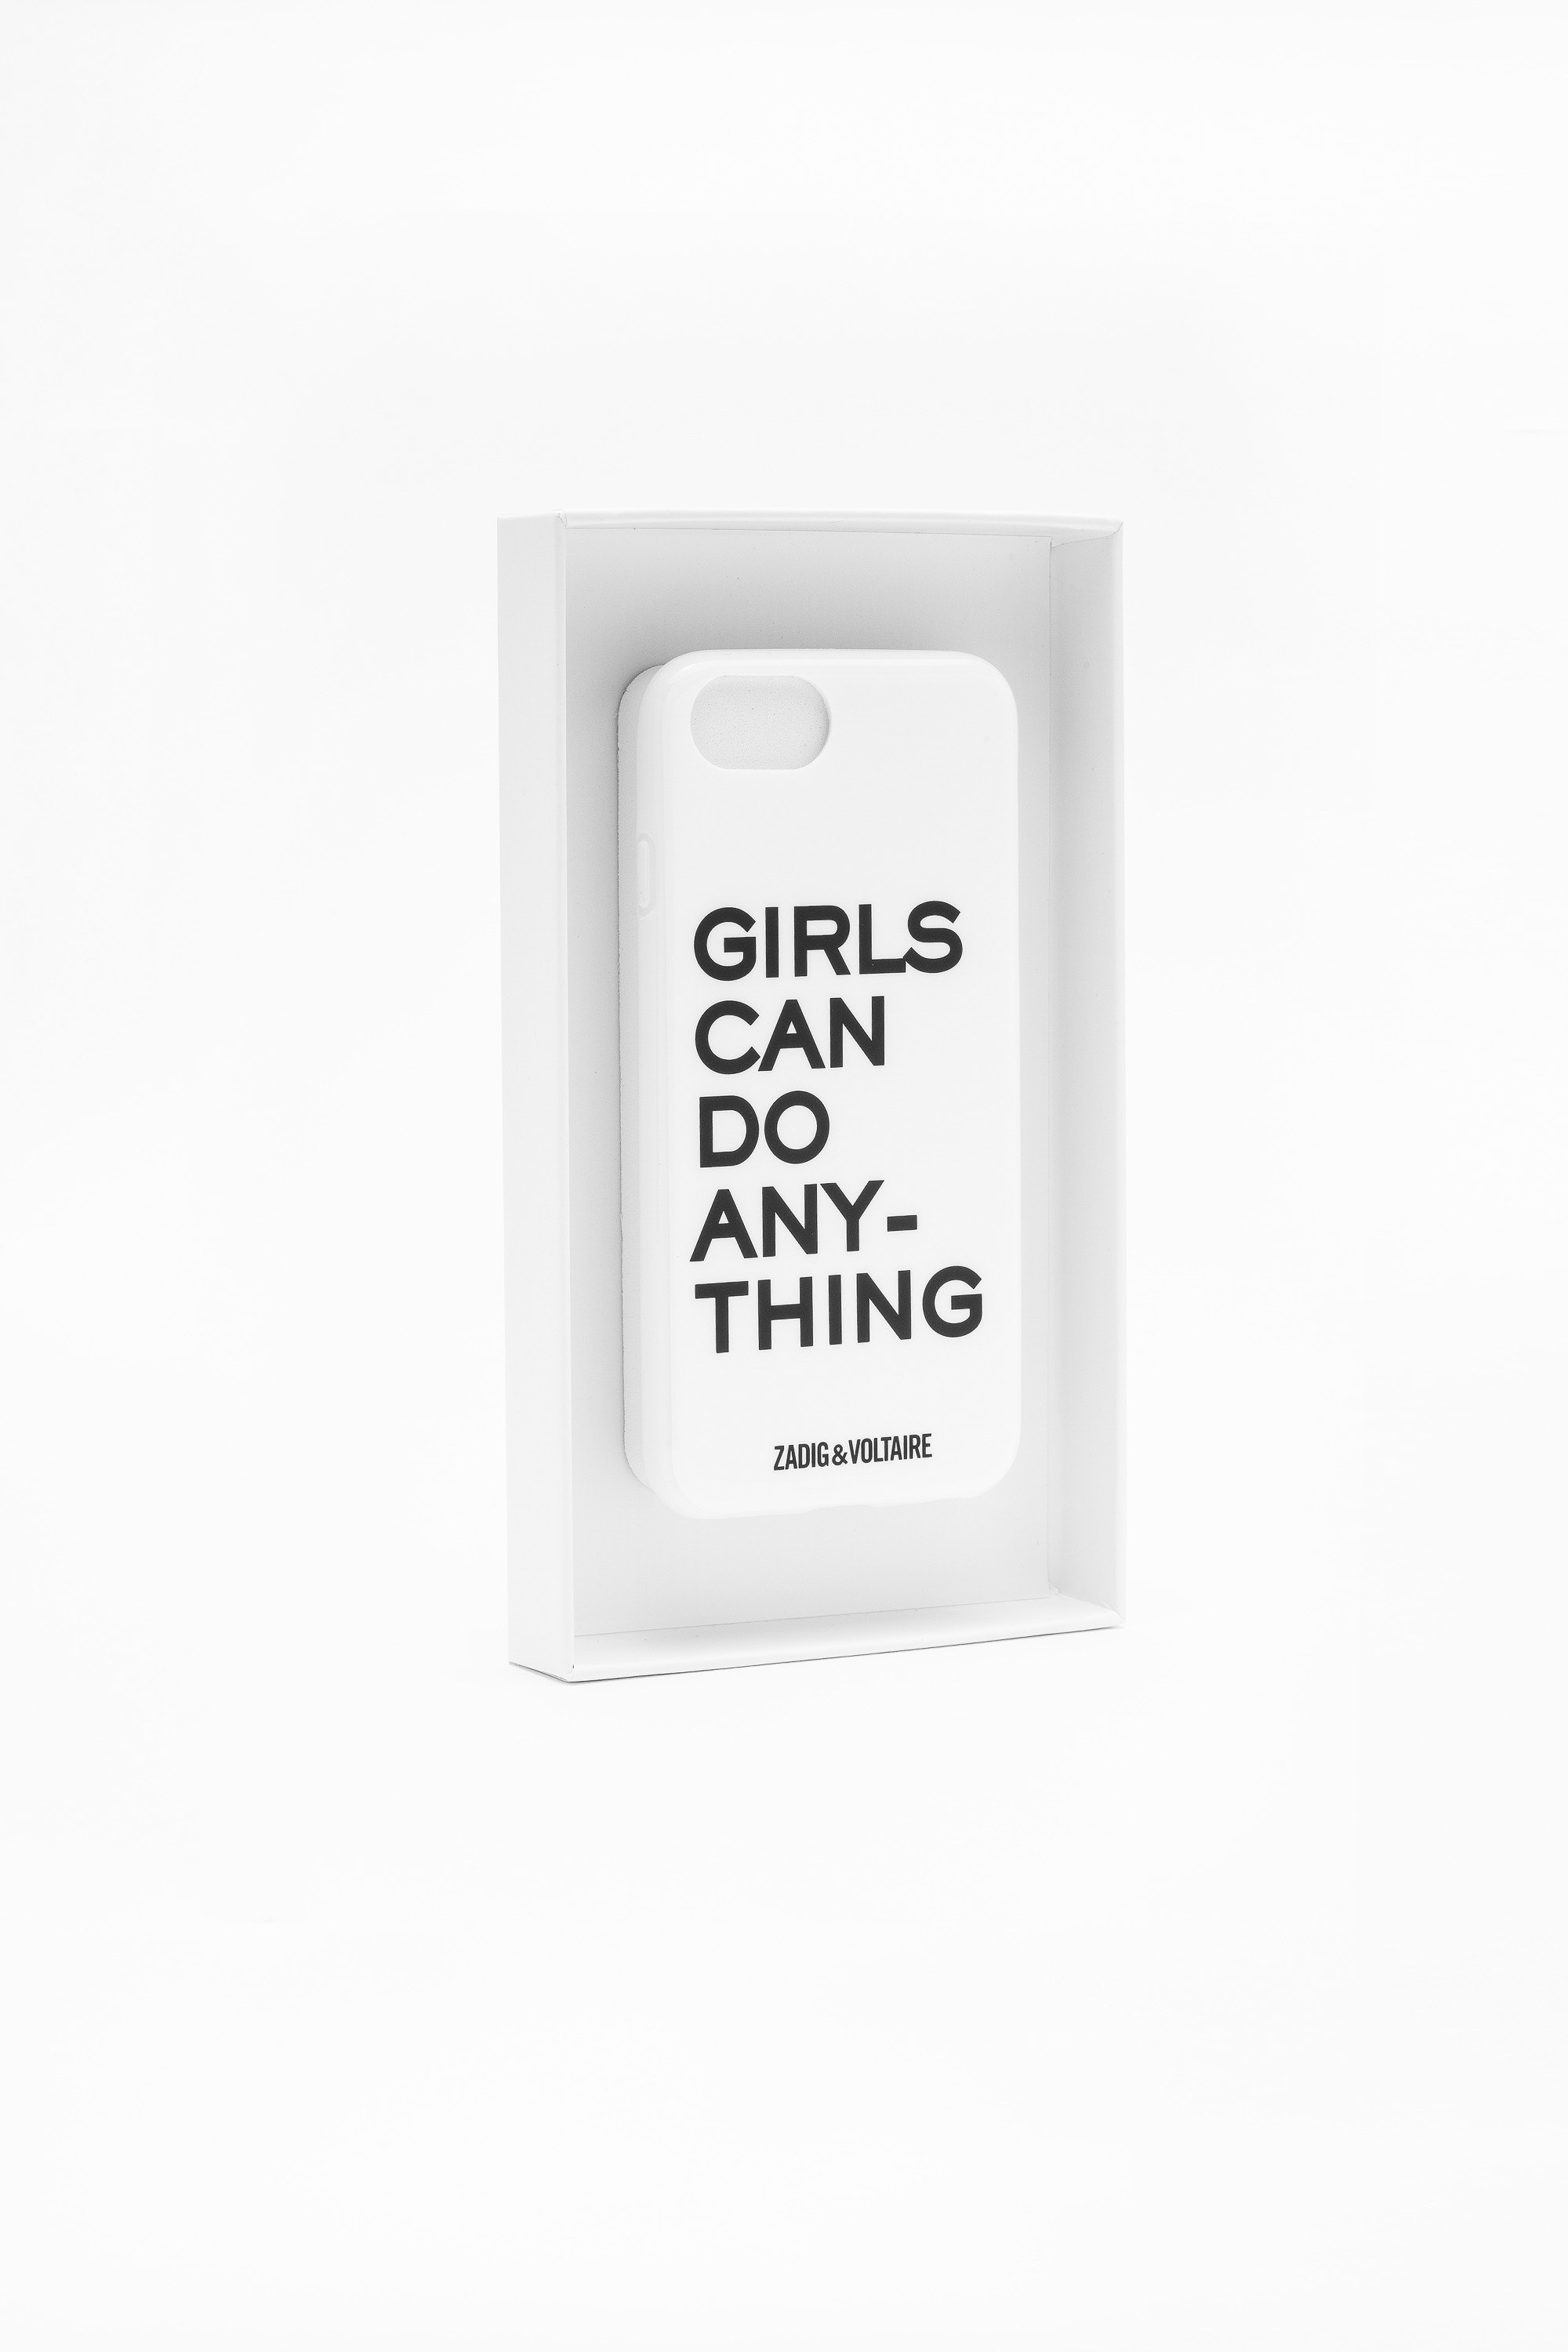 Coque Iphone Girls